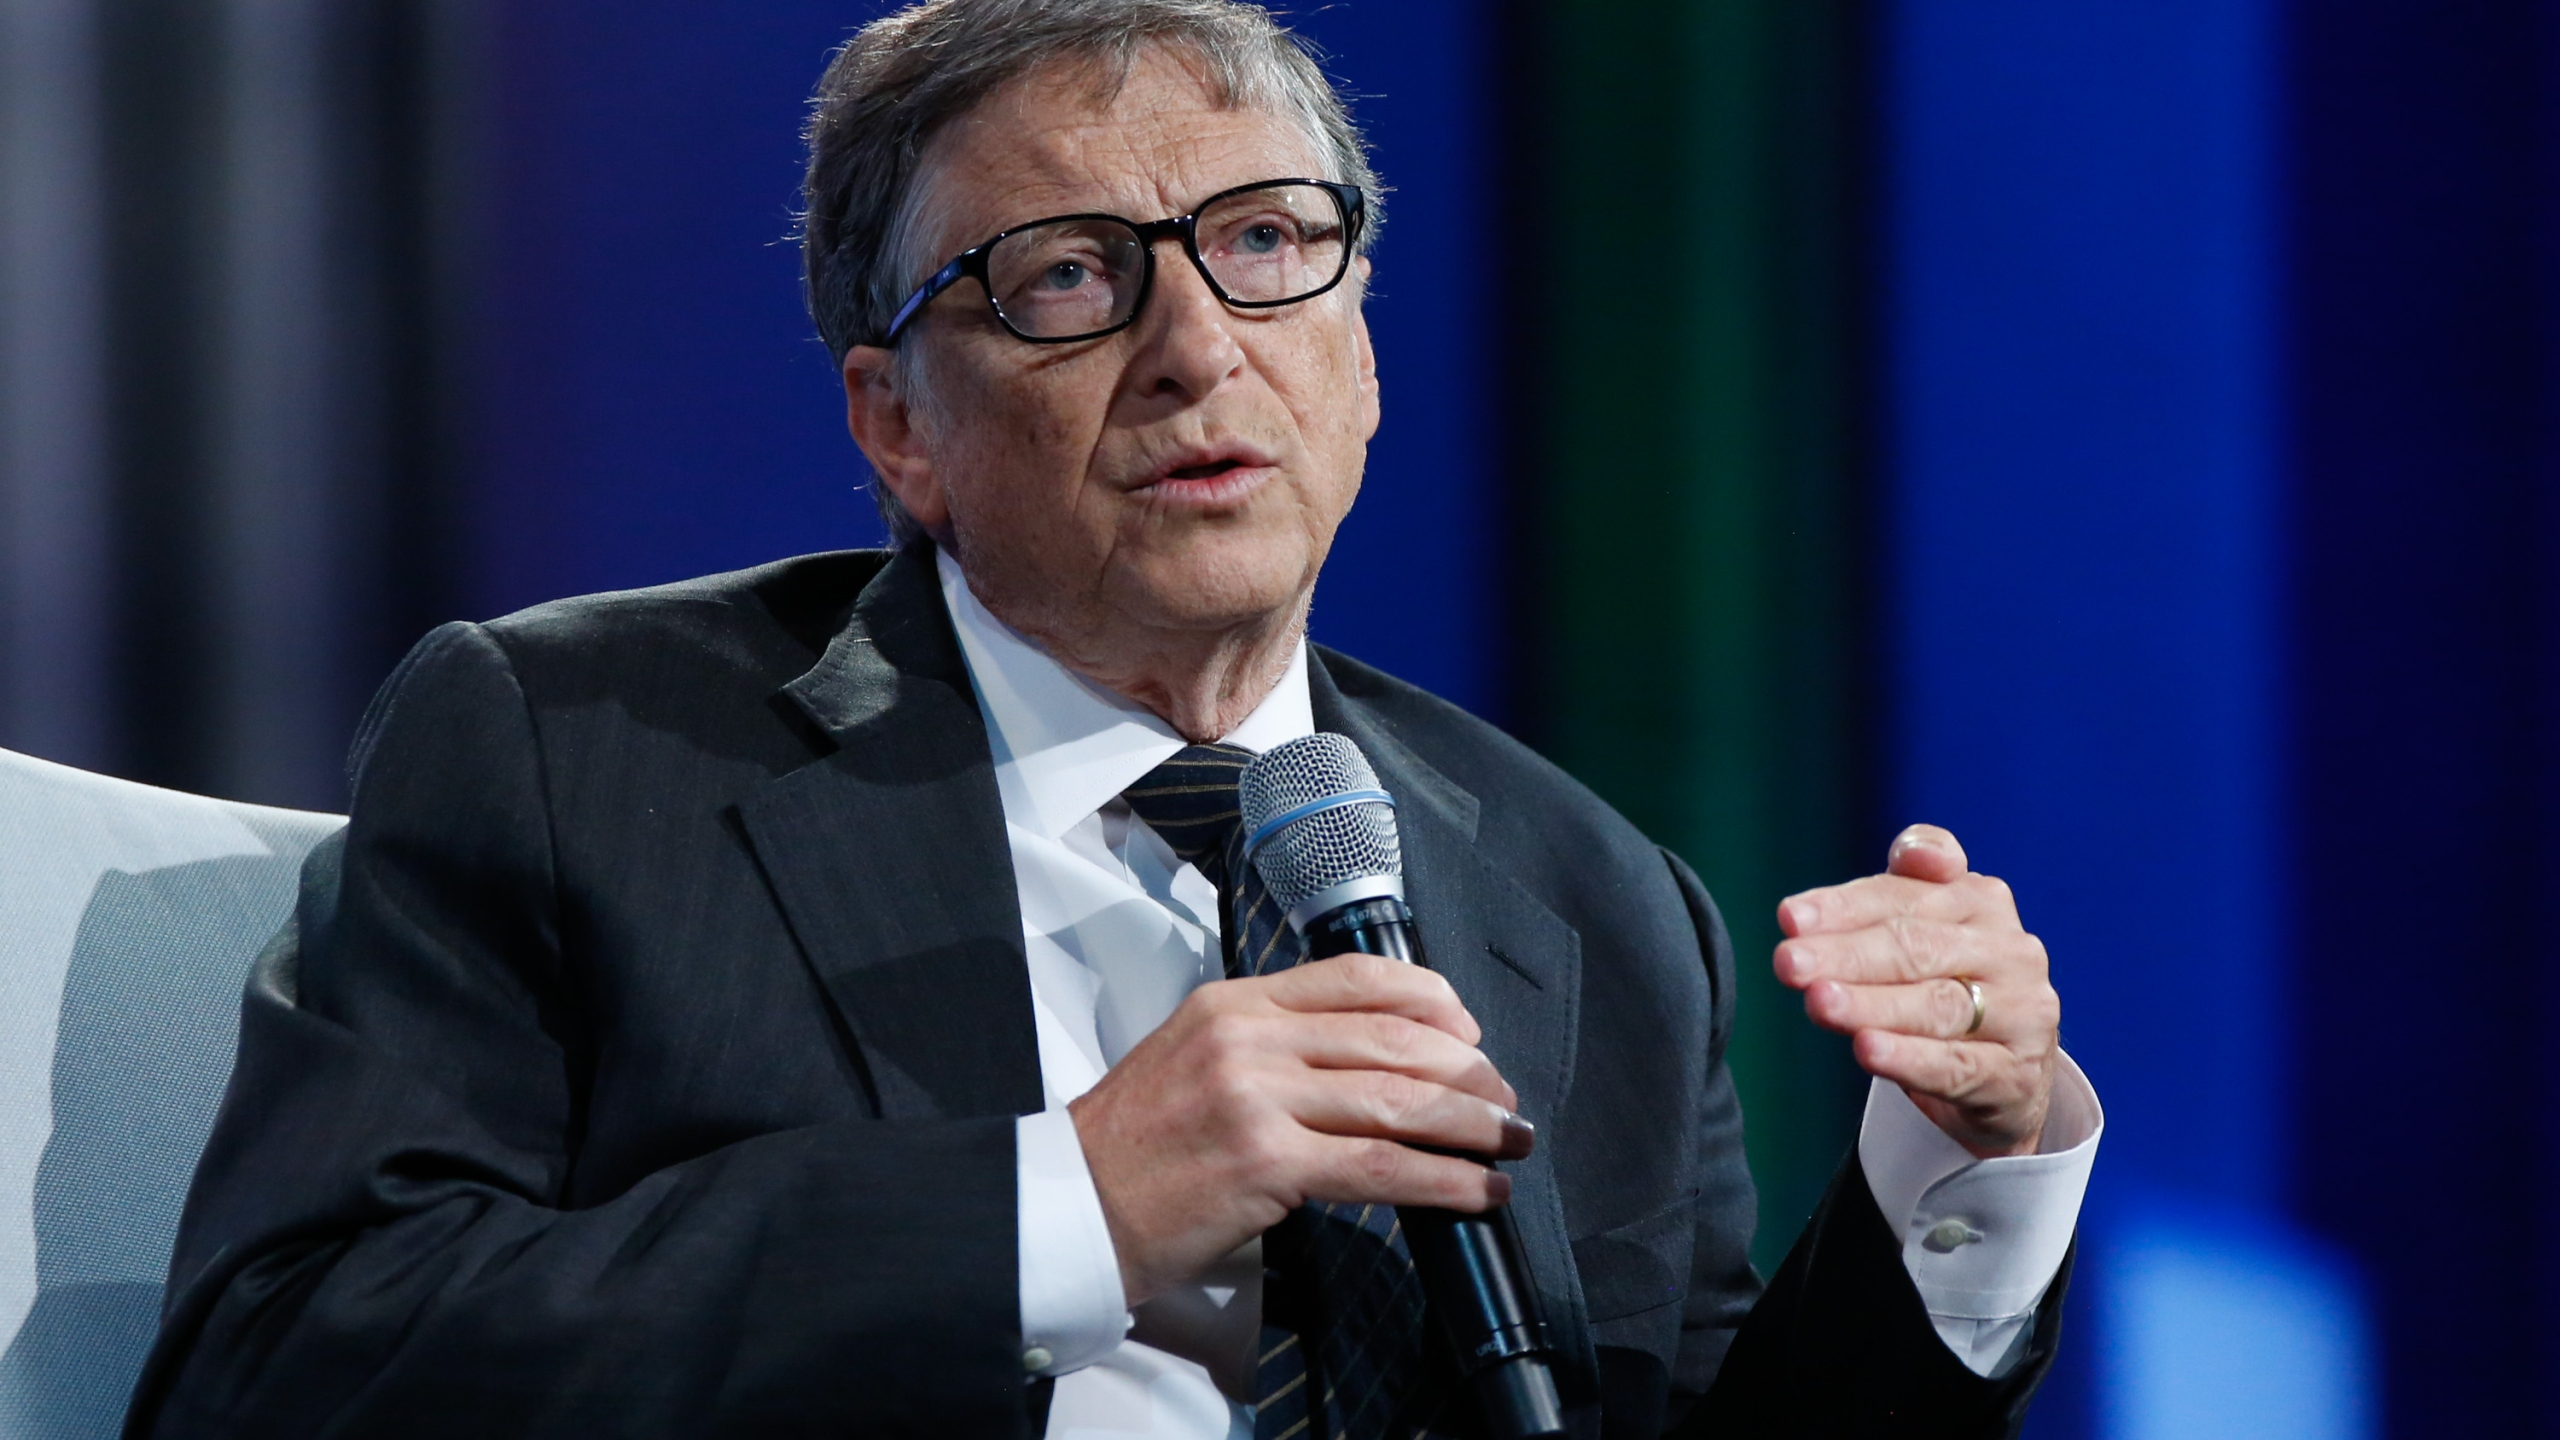 Bill Gates speaks on stage at the Plenary Session: Investing in Prevention and Resilient Health Systems on September 27, 2015 in New York City. (Credit: JP Yim/Getty Images)